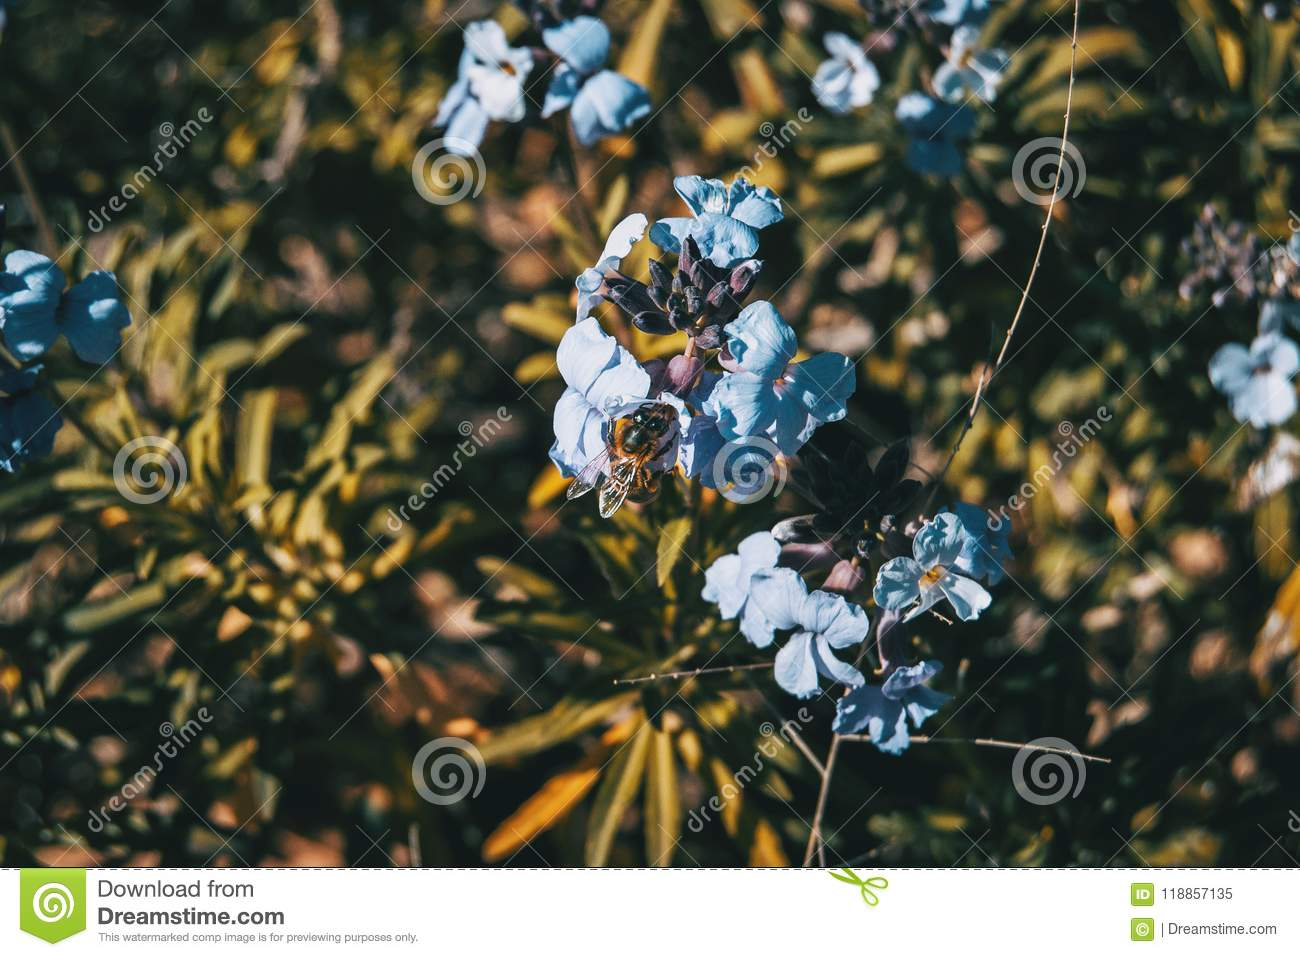 Lilac and blue flowers of bicolor erysimum in nature